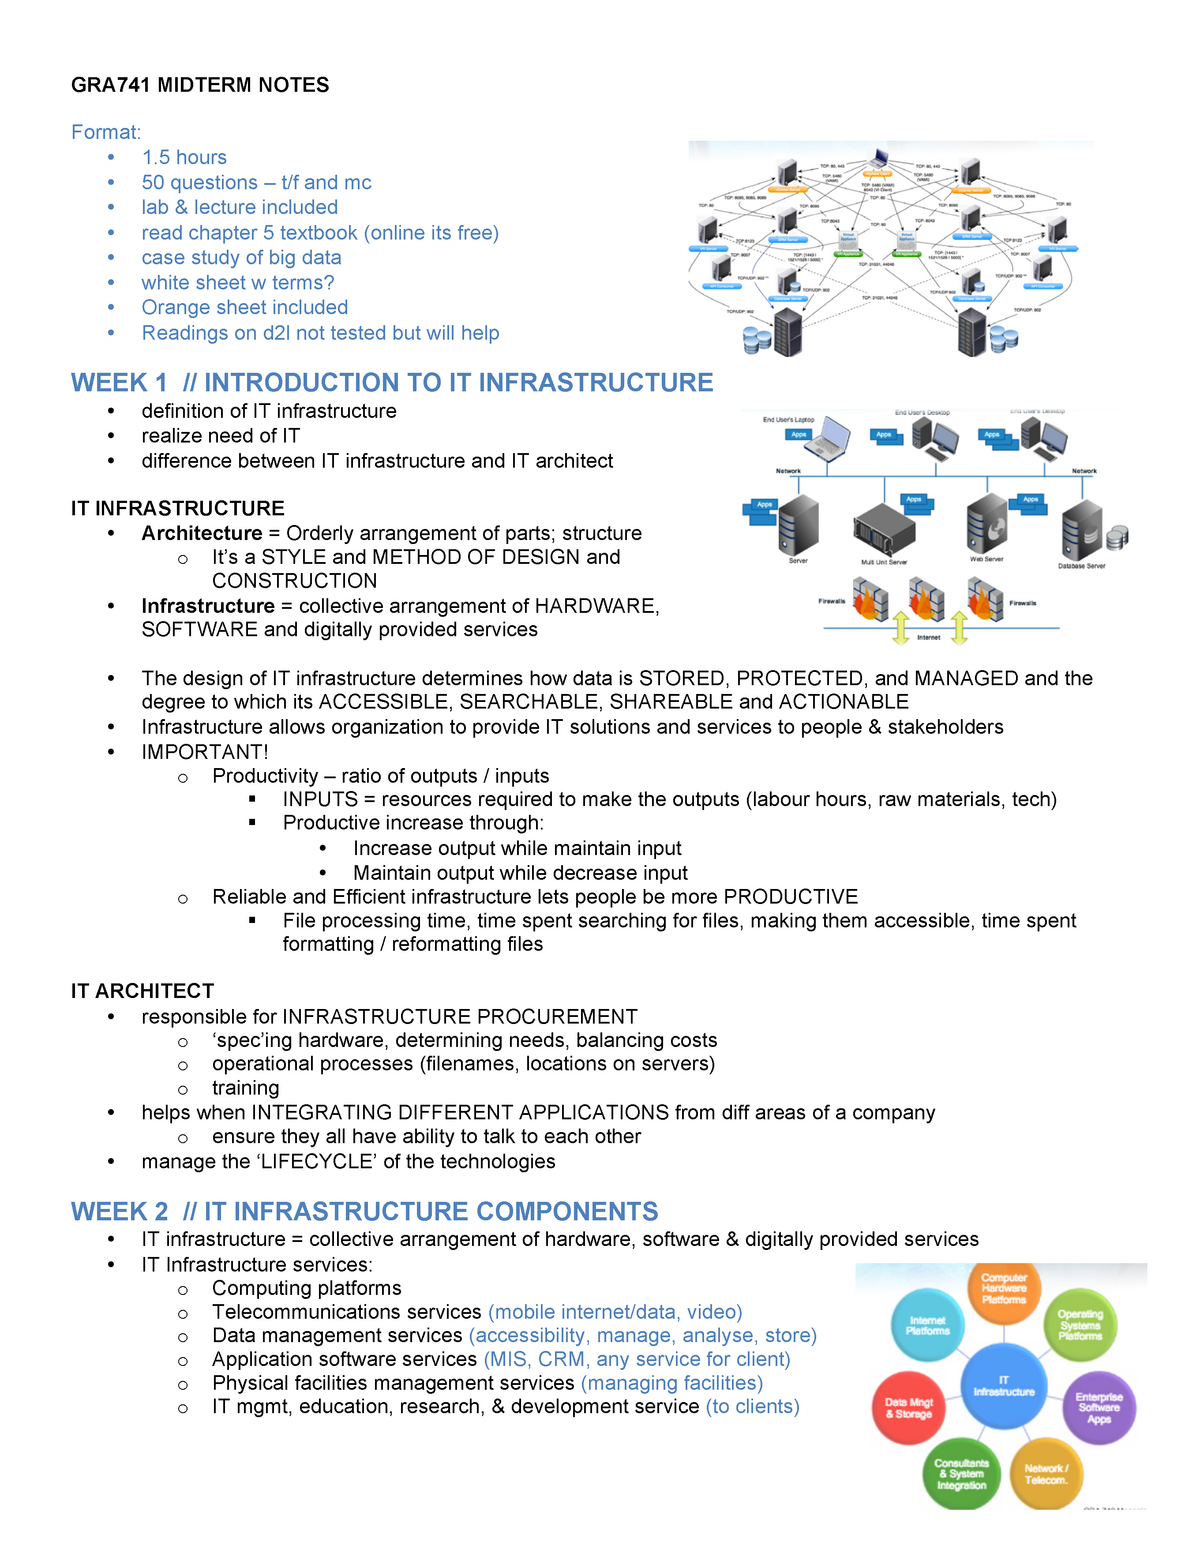 Lecture notes, midterm notes - GRA 743: Managing Advanced Technology